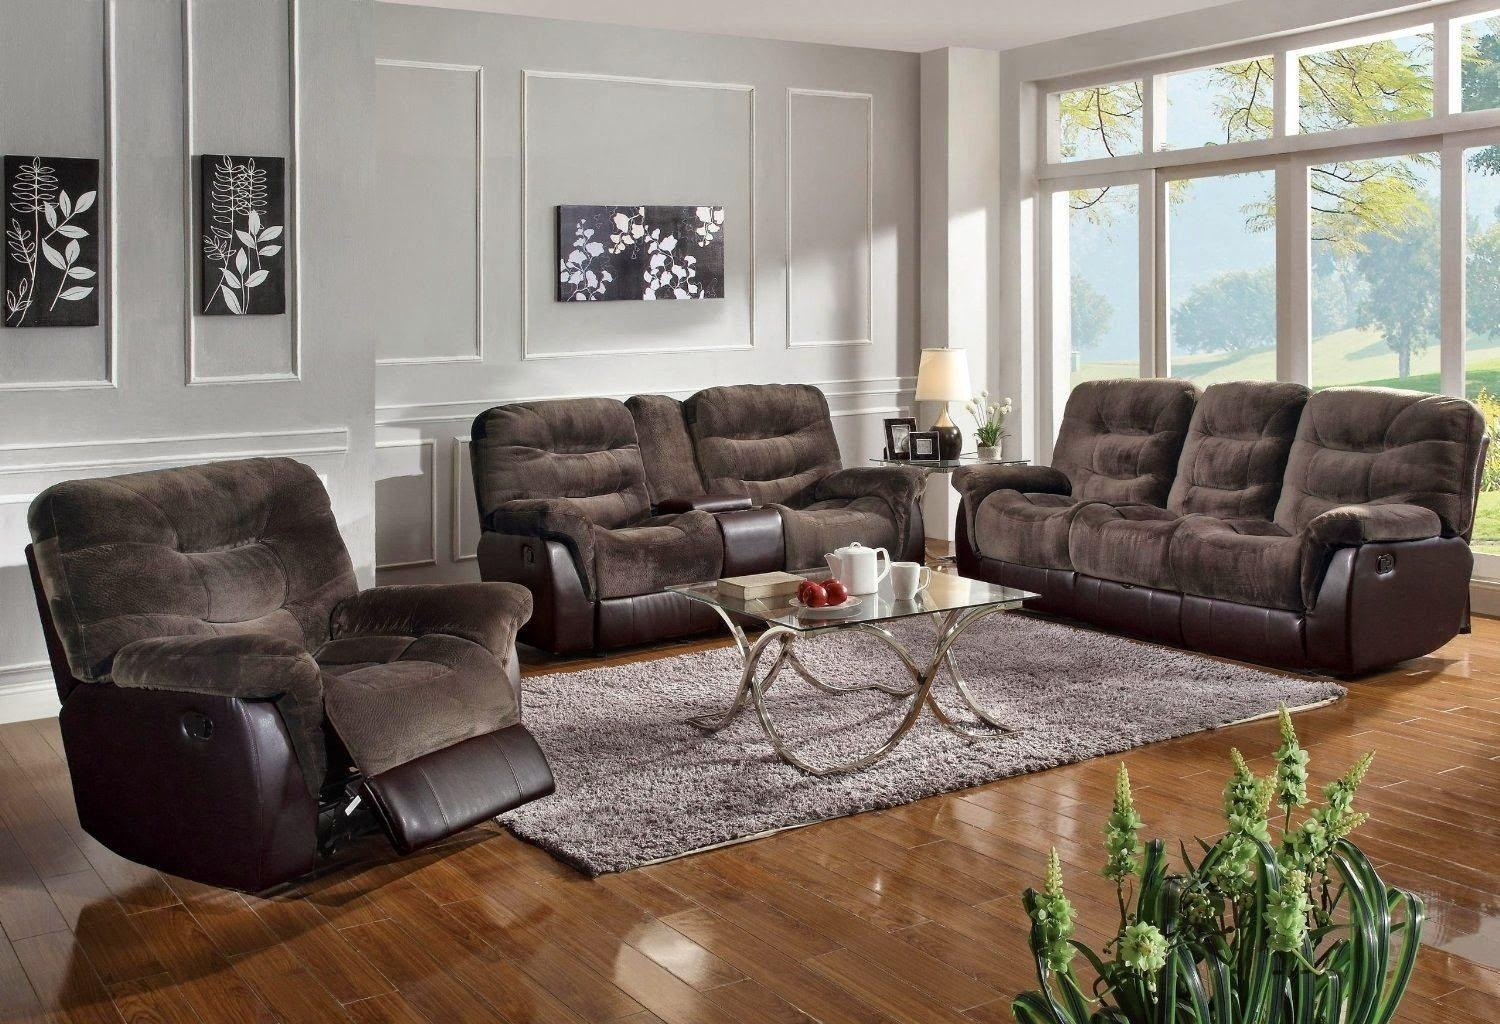 Small Sectional Sofa With Recliner With Design Gallery 7492 In Sectional Sofas For Small Spaces With Recliners (Image 16 of 20)